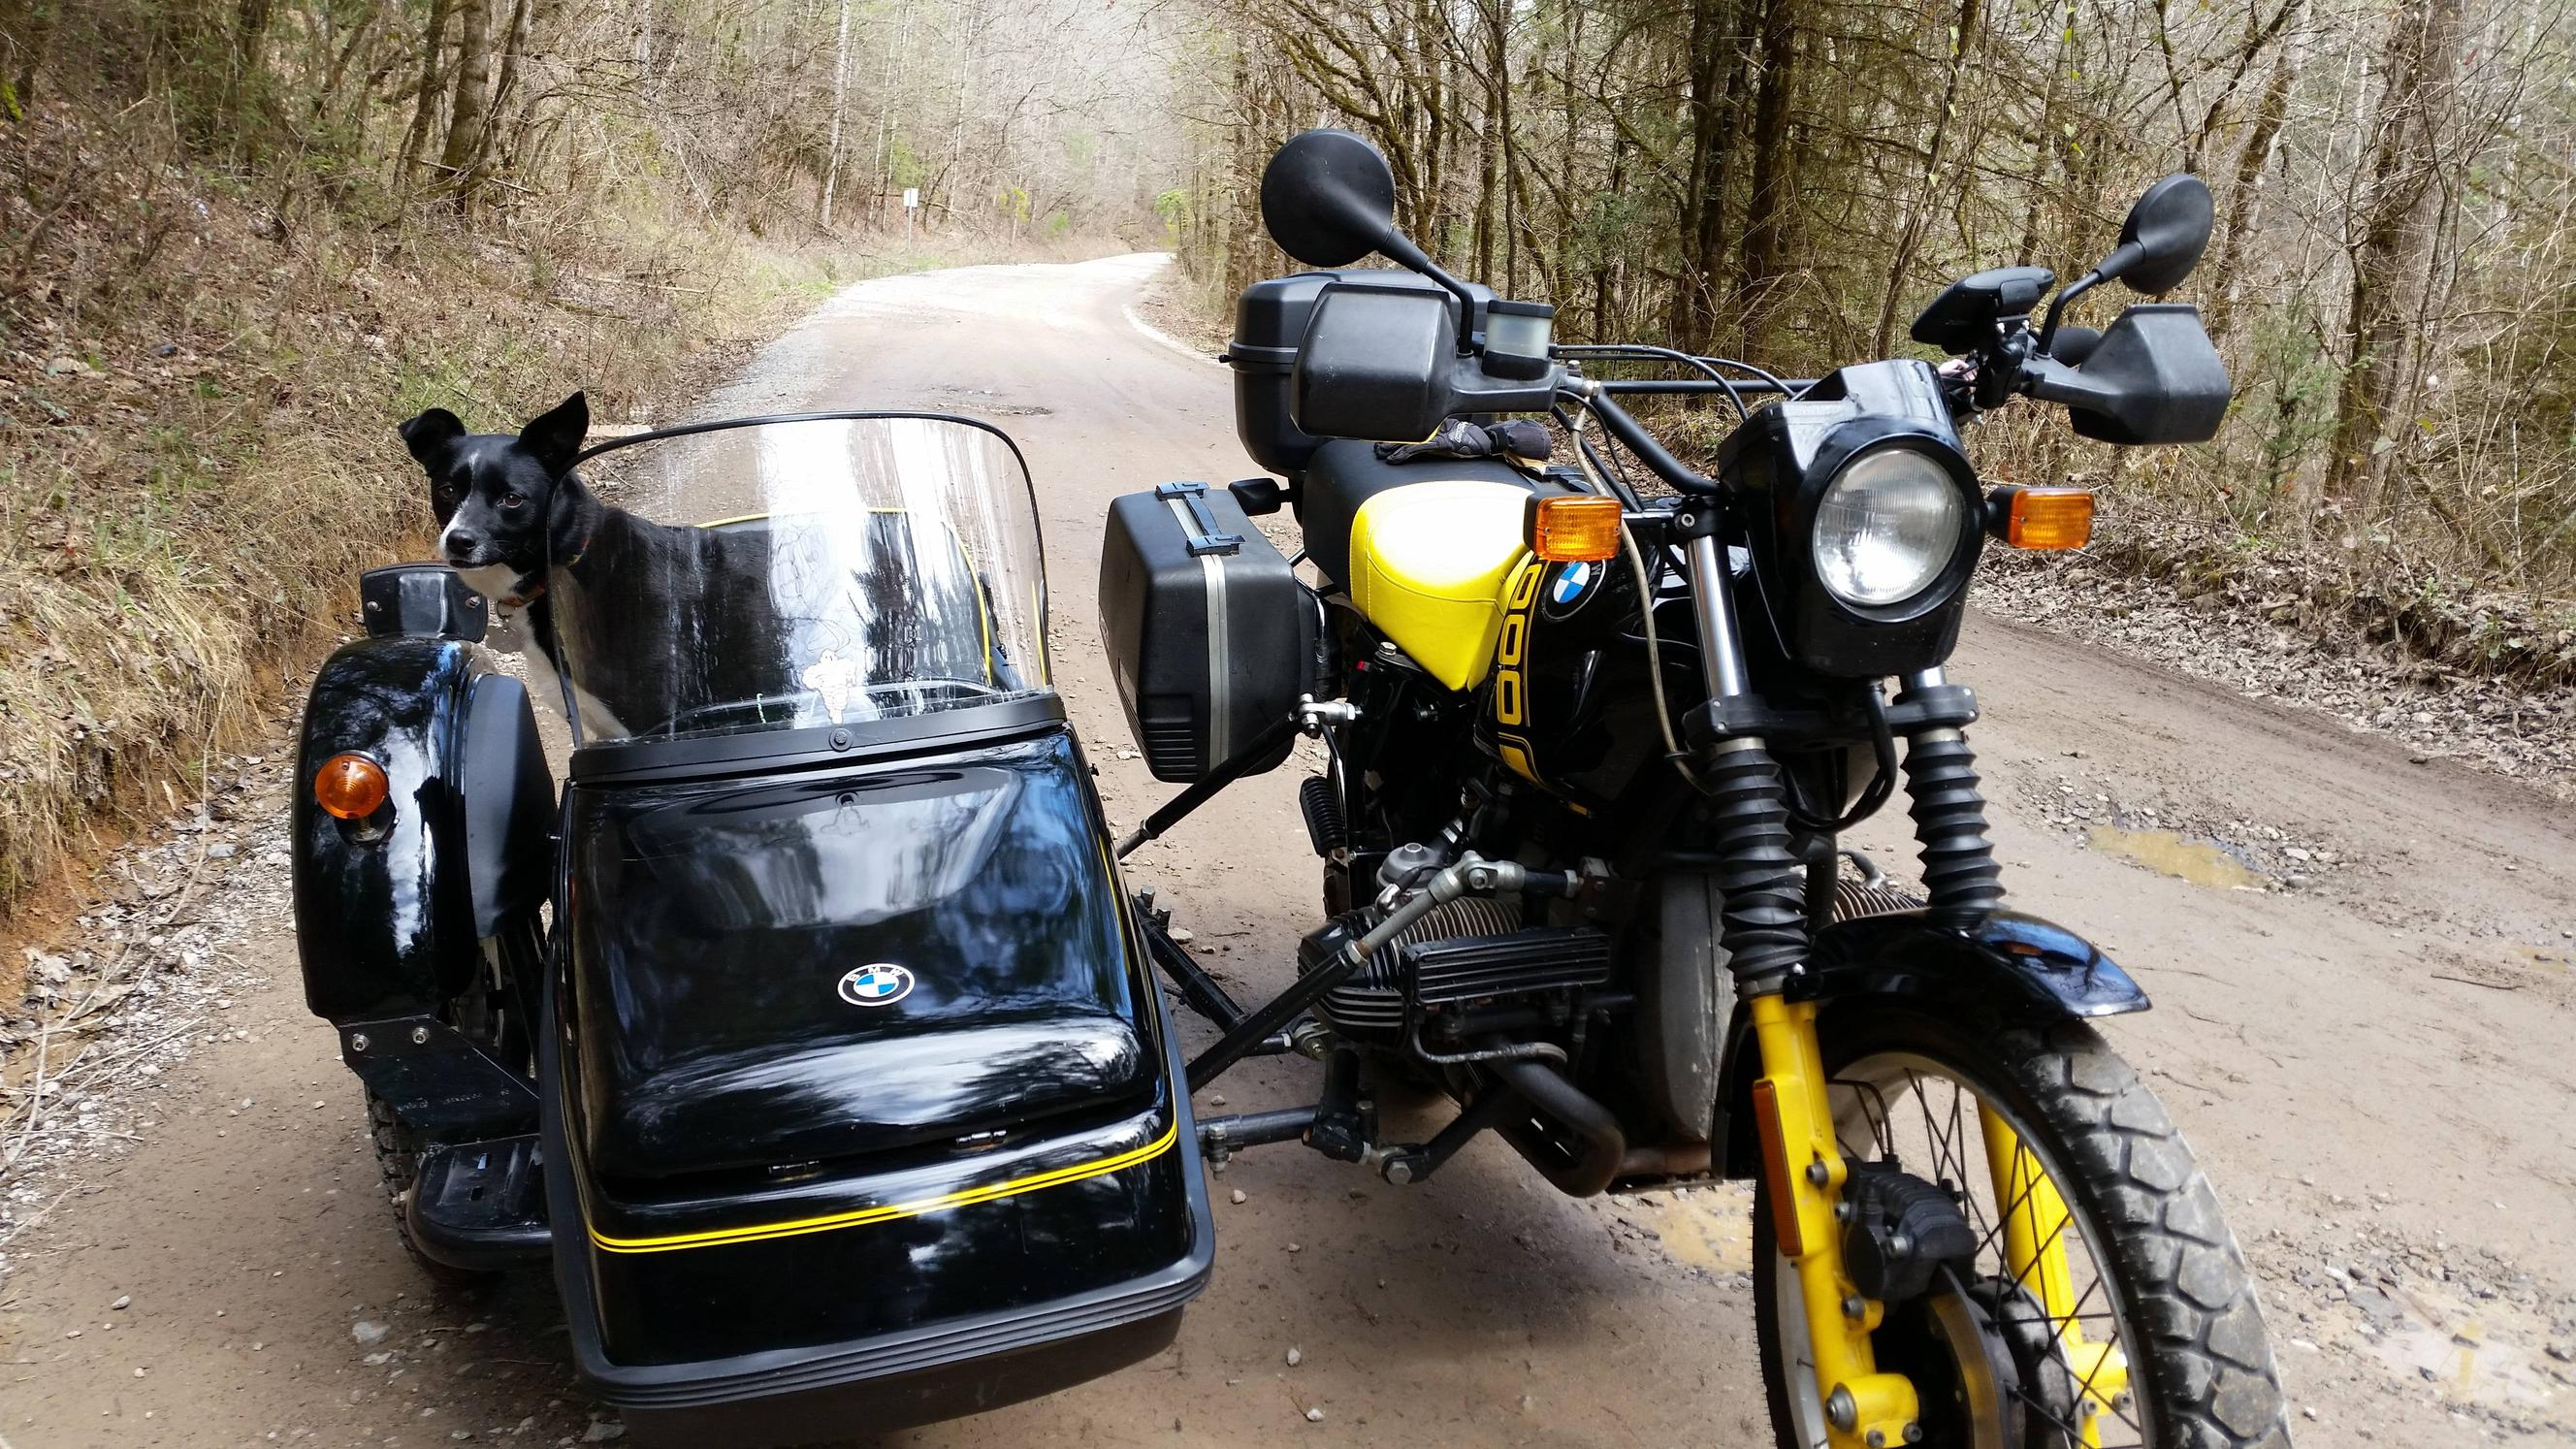 Ural M-63 with sidecar 1975 images #127085